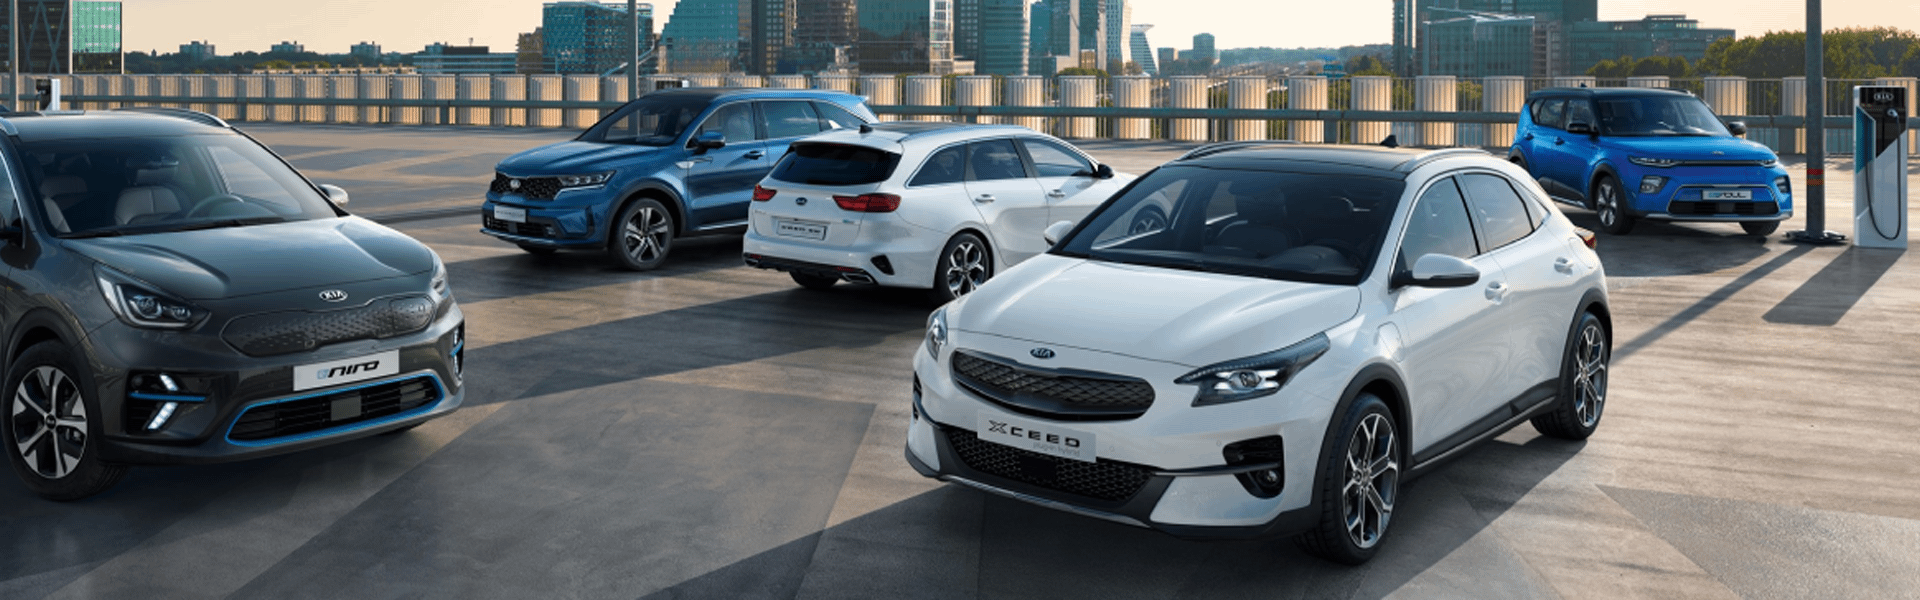 Discover Electric & Hybrid